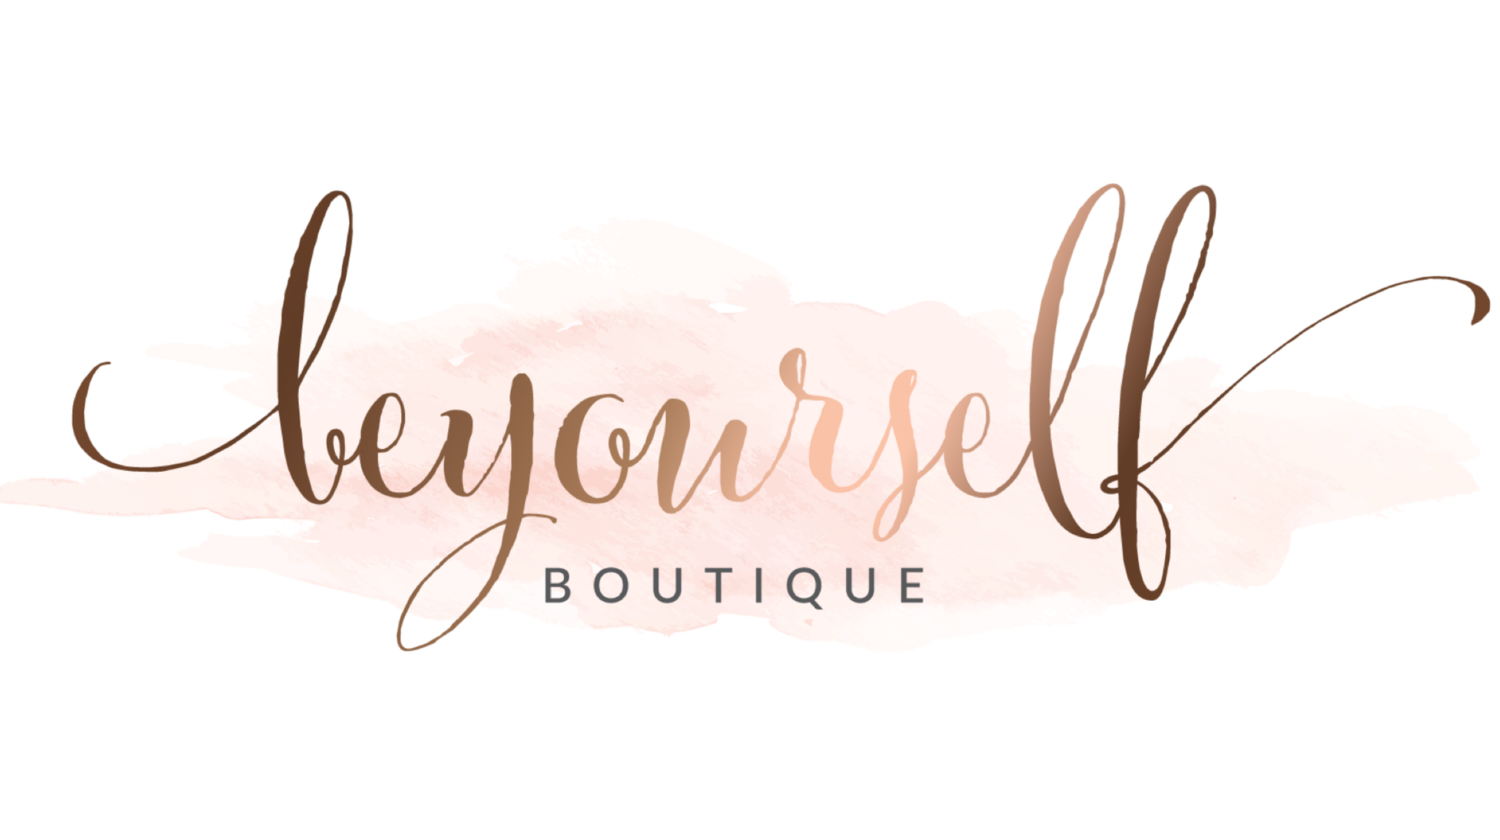 beyourself boutique